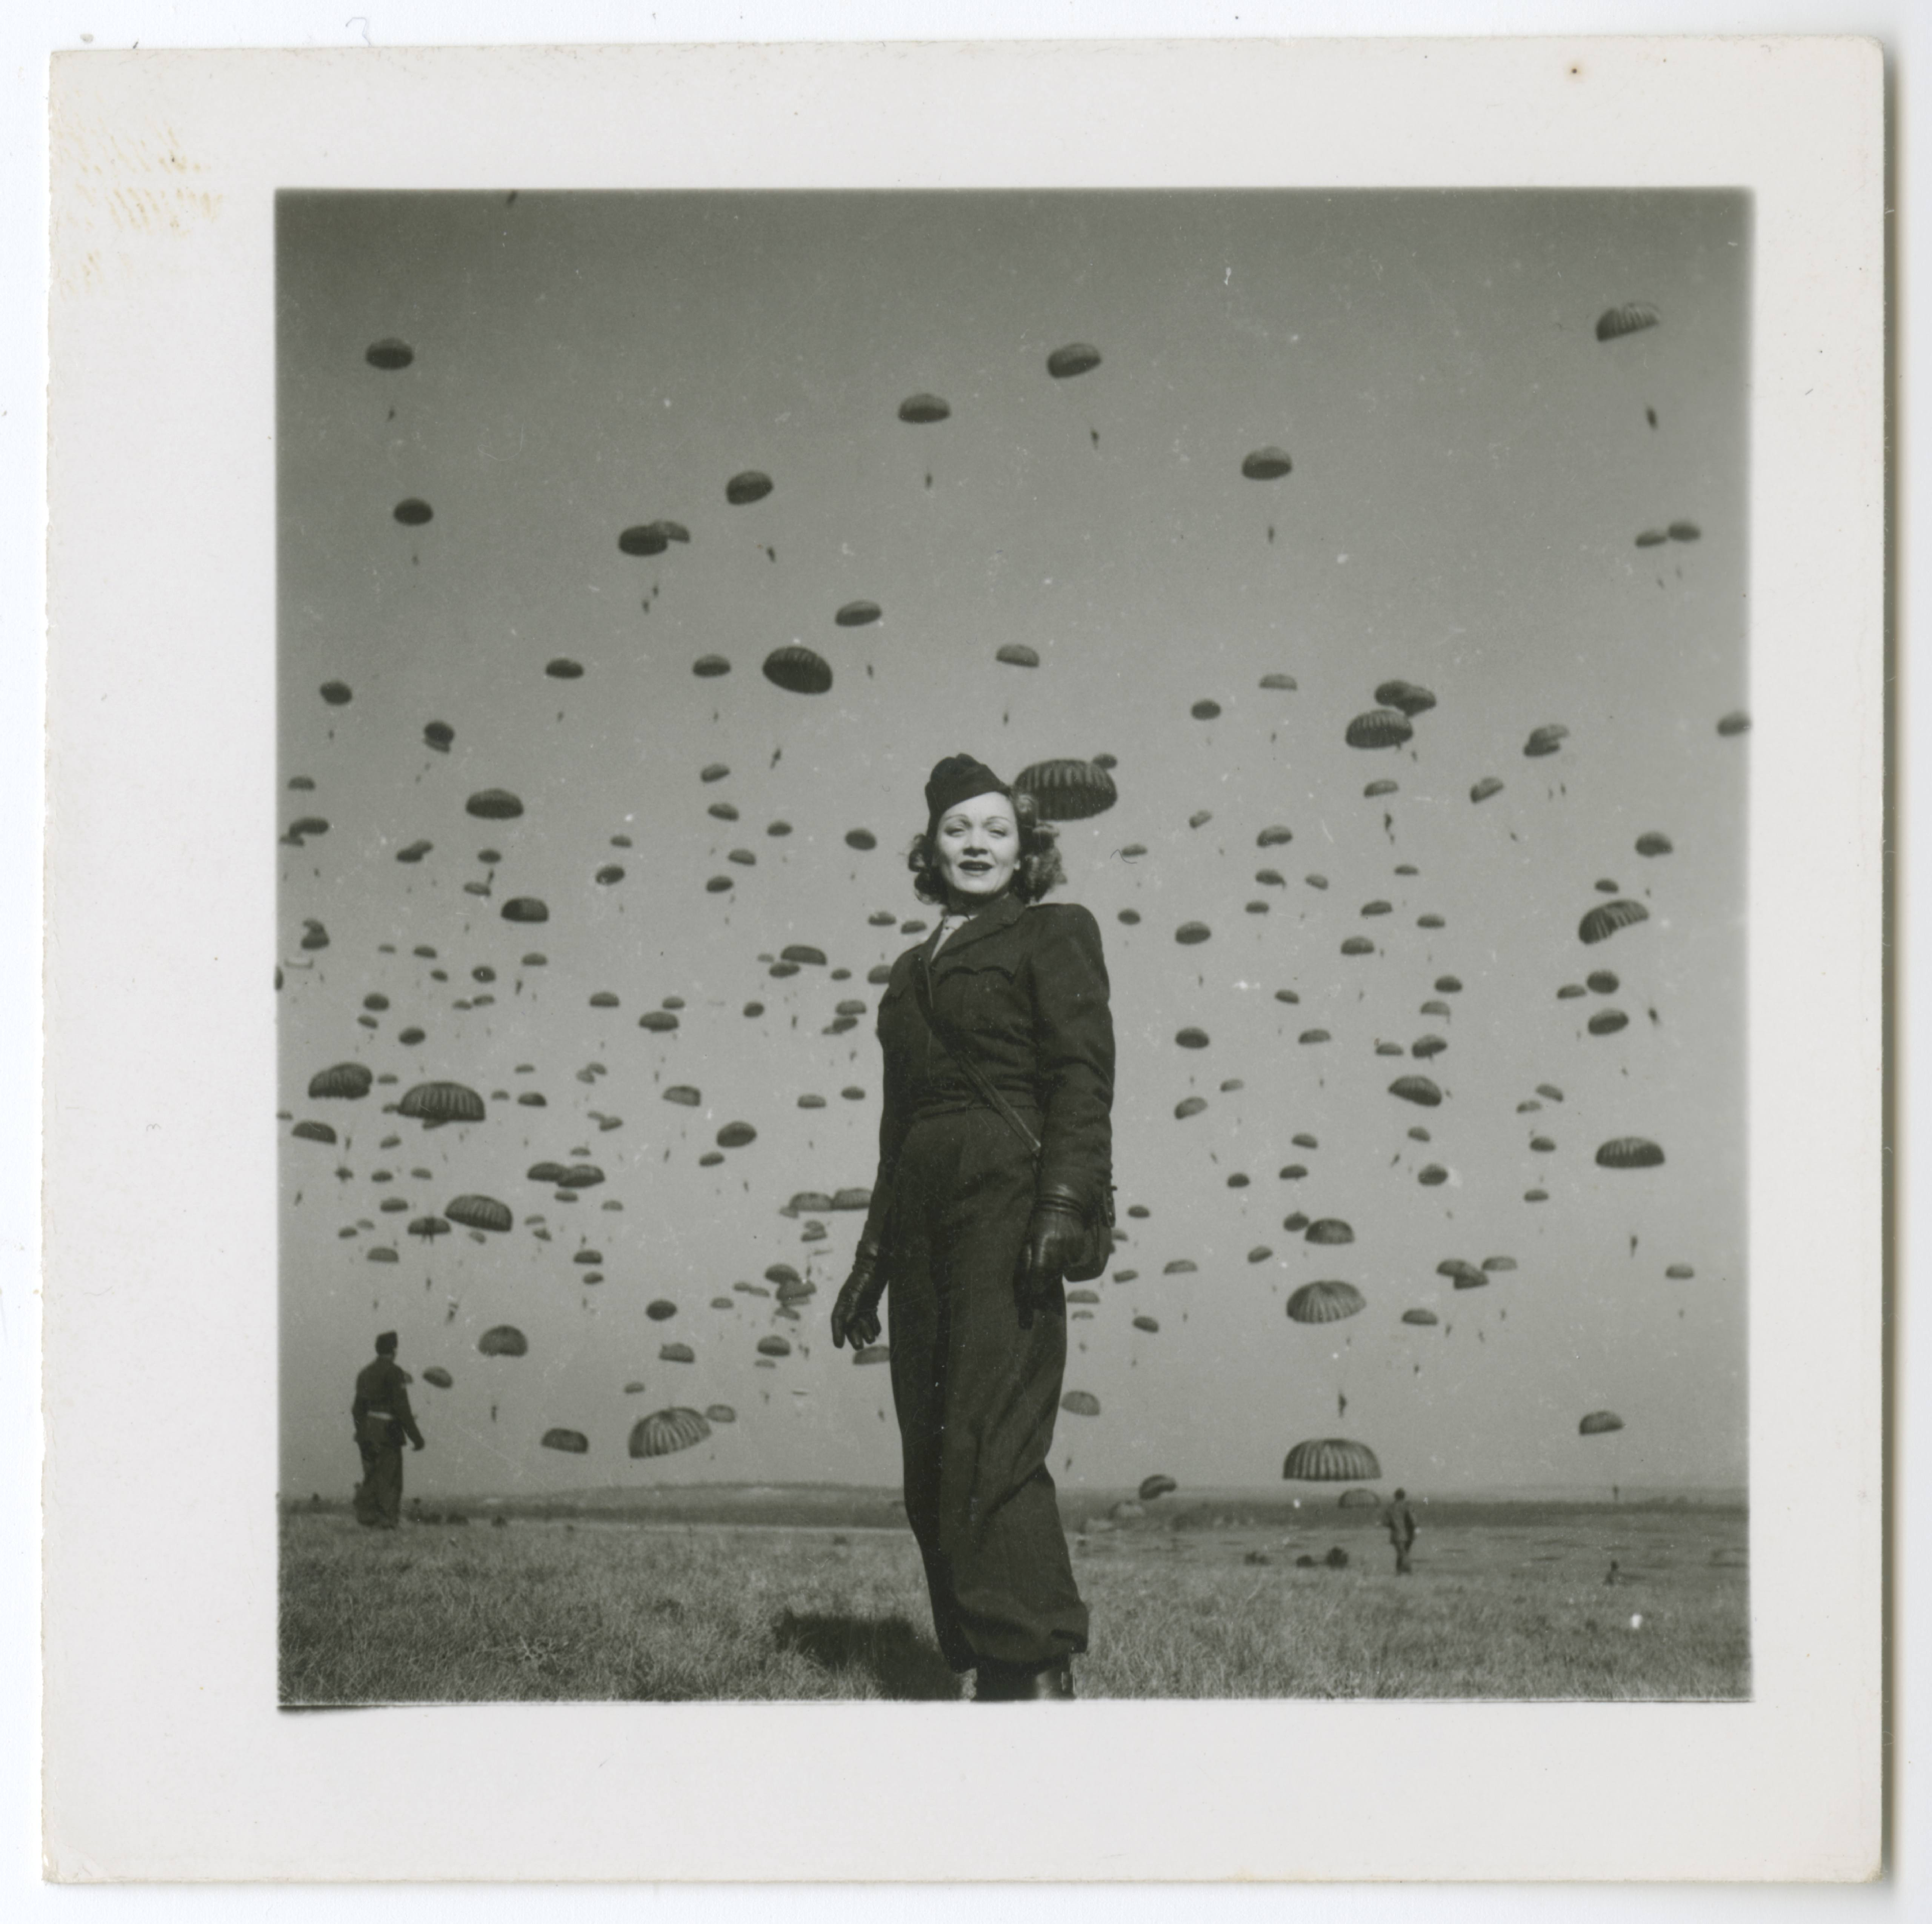 Marlene Dietrich on a paratrooper practice jump with the 82nd Airborne Division, Soissons in northern France, 13 March 1945